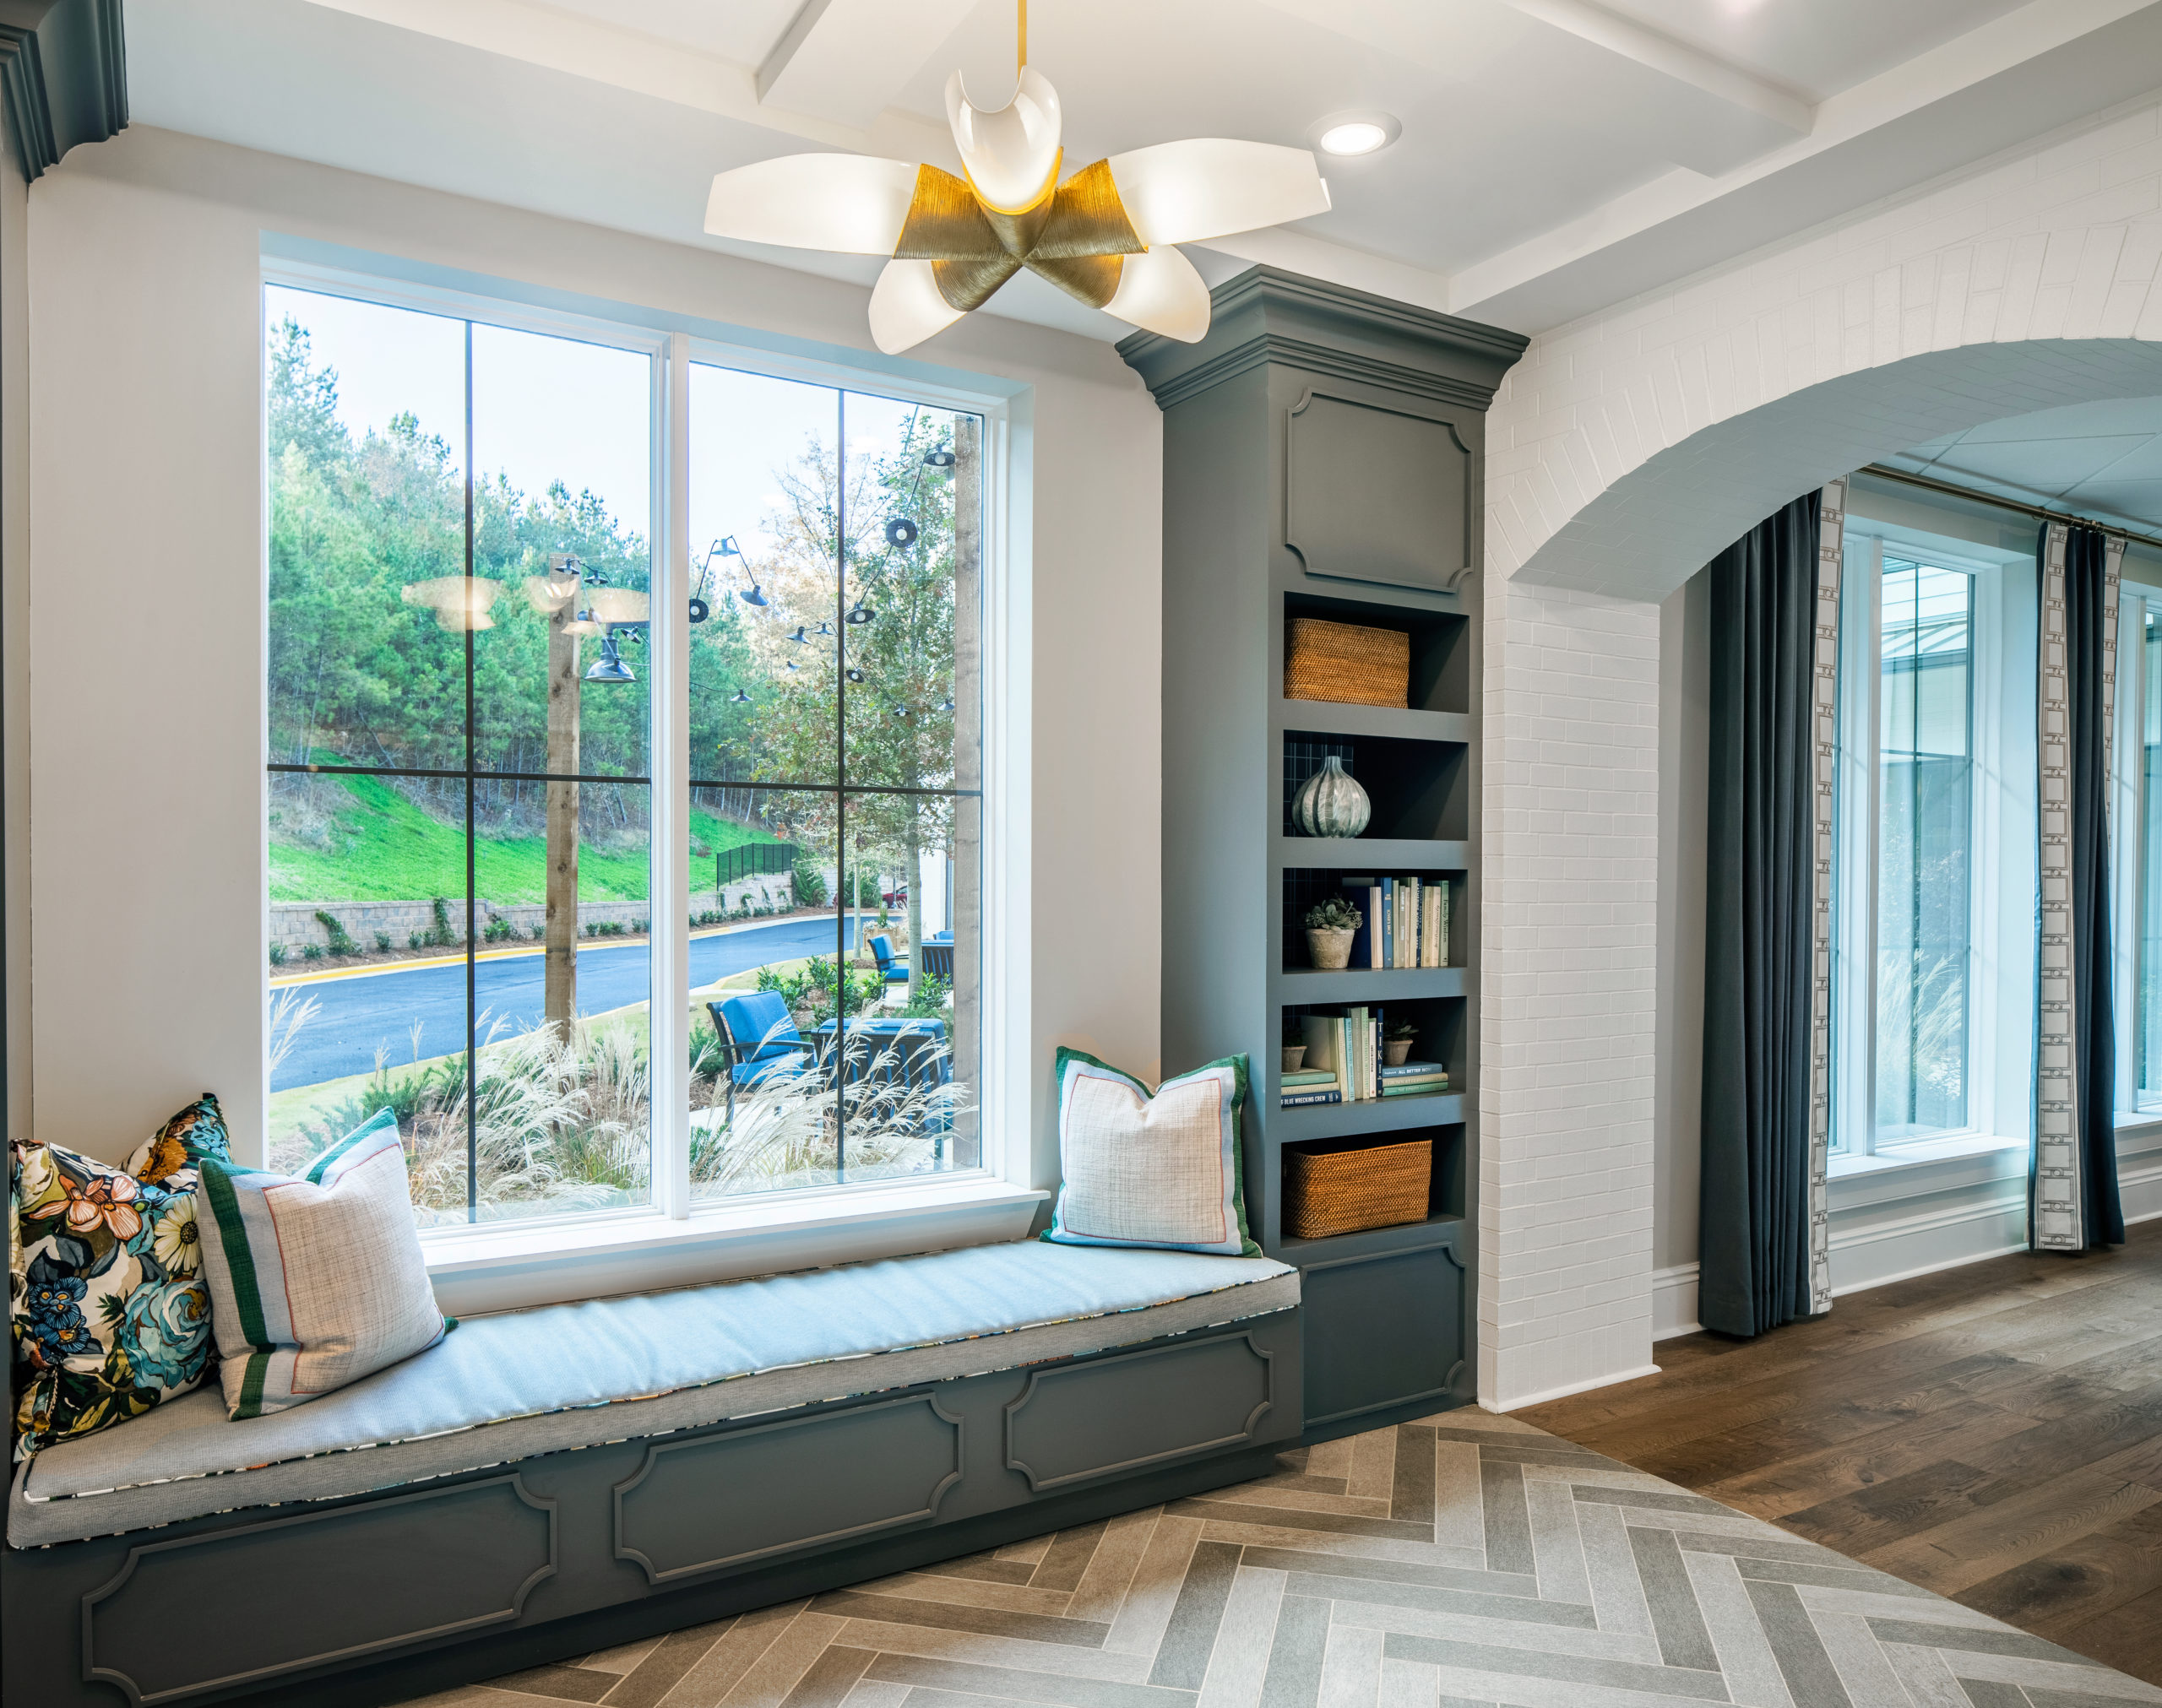 Longleaf common space window with bench setting and pillows, gray paneling and bookshelf, view of patio and green trees